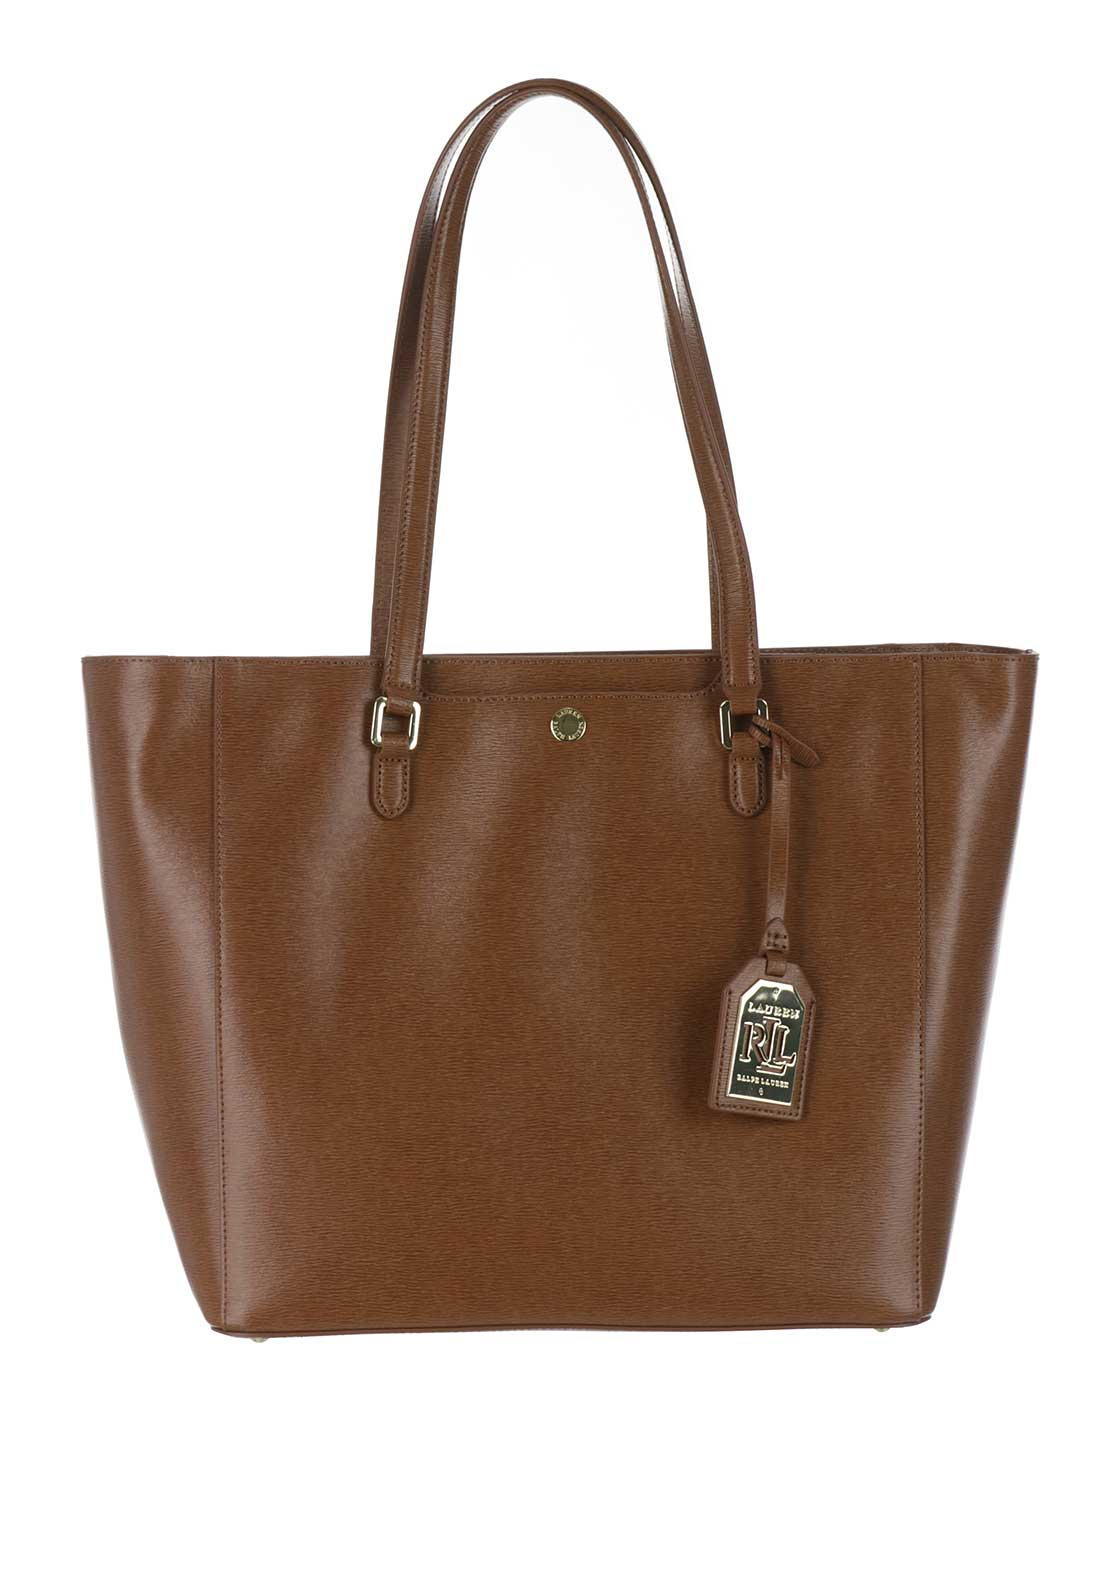 Lauren Ralph Lauren Leather Newbury Halee Tote Bag, Tan